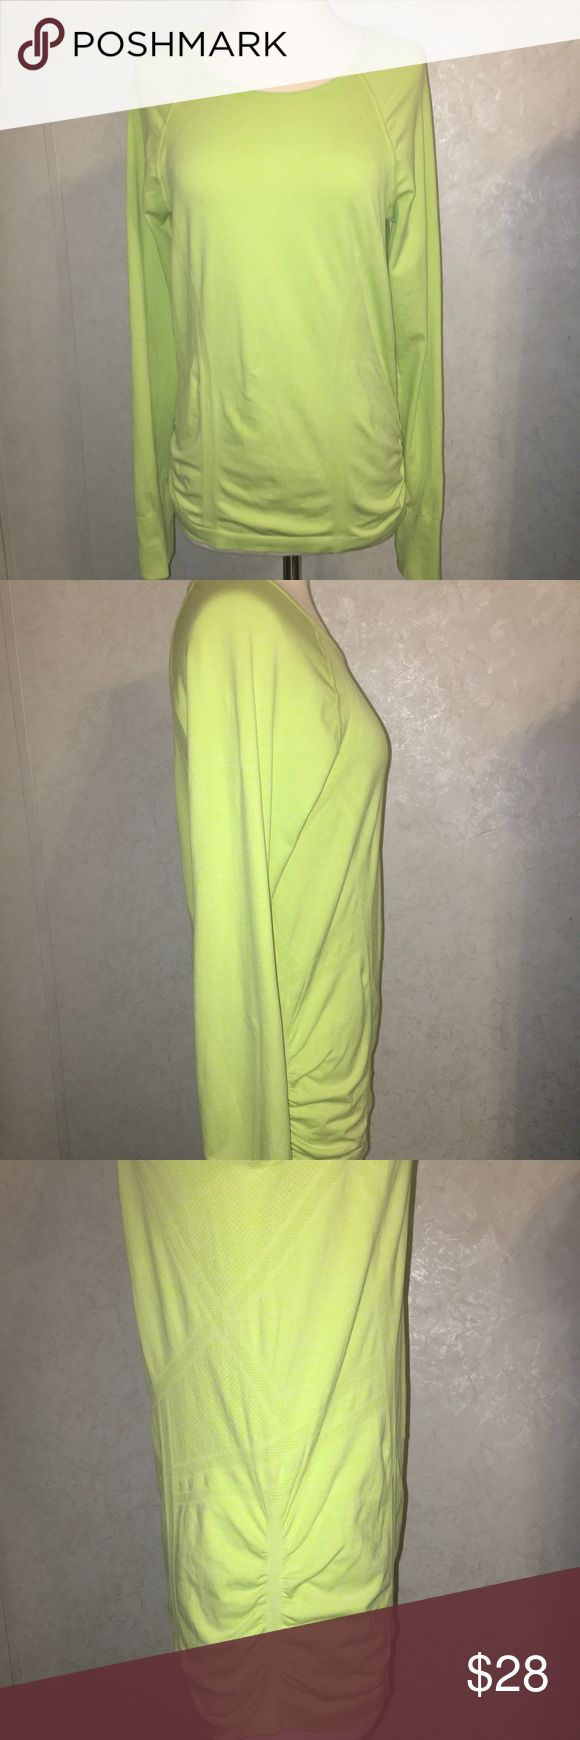 "Athleta Neon Running Top - Large Athleta Neon Running Top - Large Thumb holes - great neon color Gently loved - ready for new home Ruched sides - 17"" Pit to Pit 16"" Pit to Bottom  15"" Shoulder to Bottom - 30"" Sleeve 17"" Across Bottom All measurements taken laying flat are approximate  Pet Free-Smoke Free Home  Thanks for looking! Athleta Tops Tees - Long Sleeve"